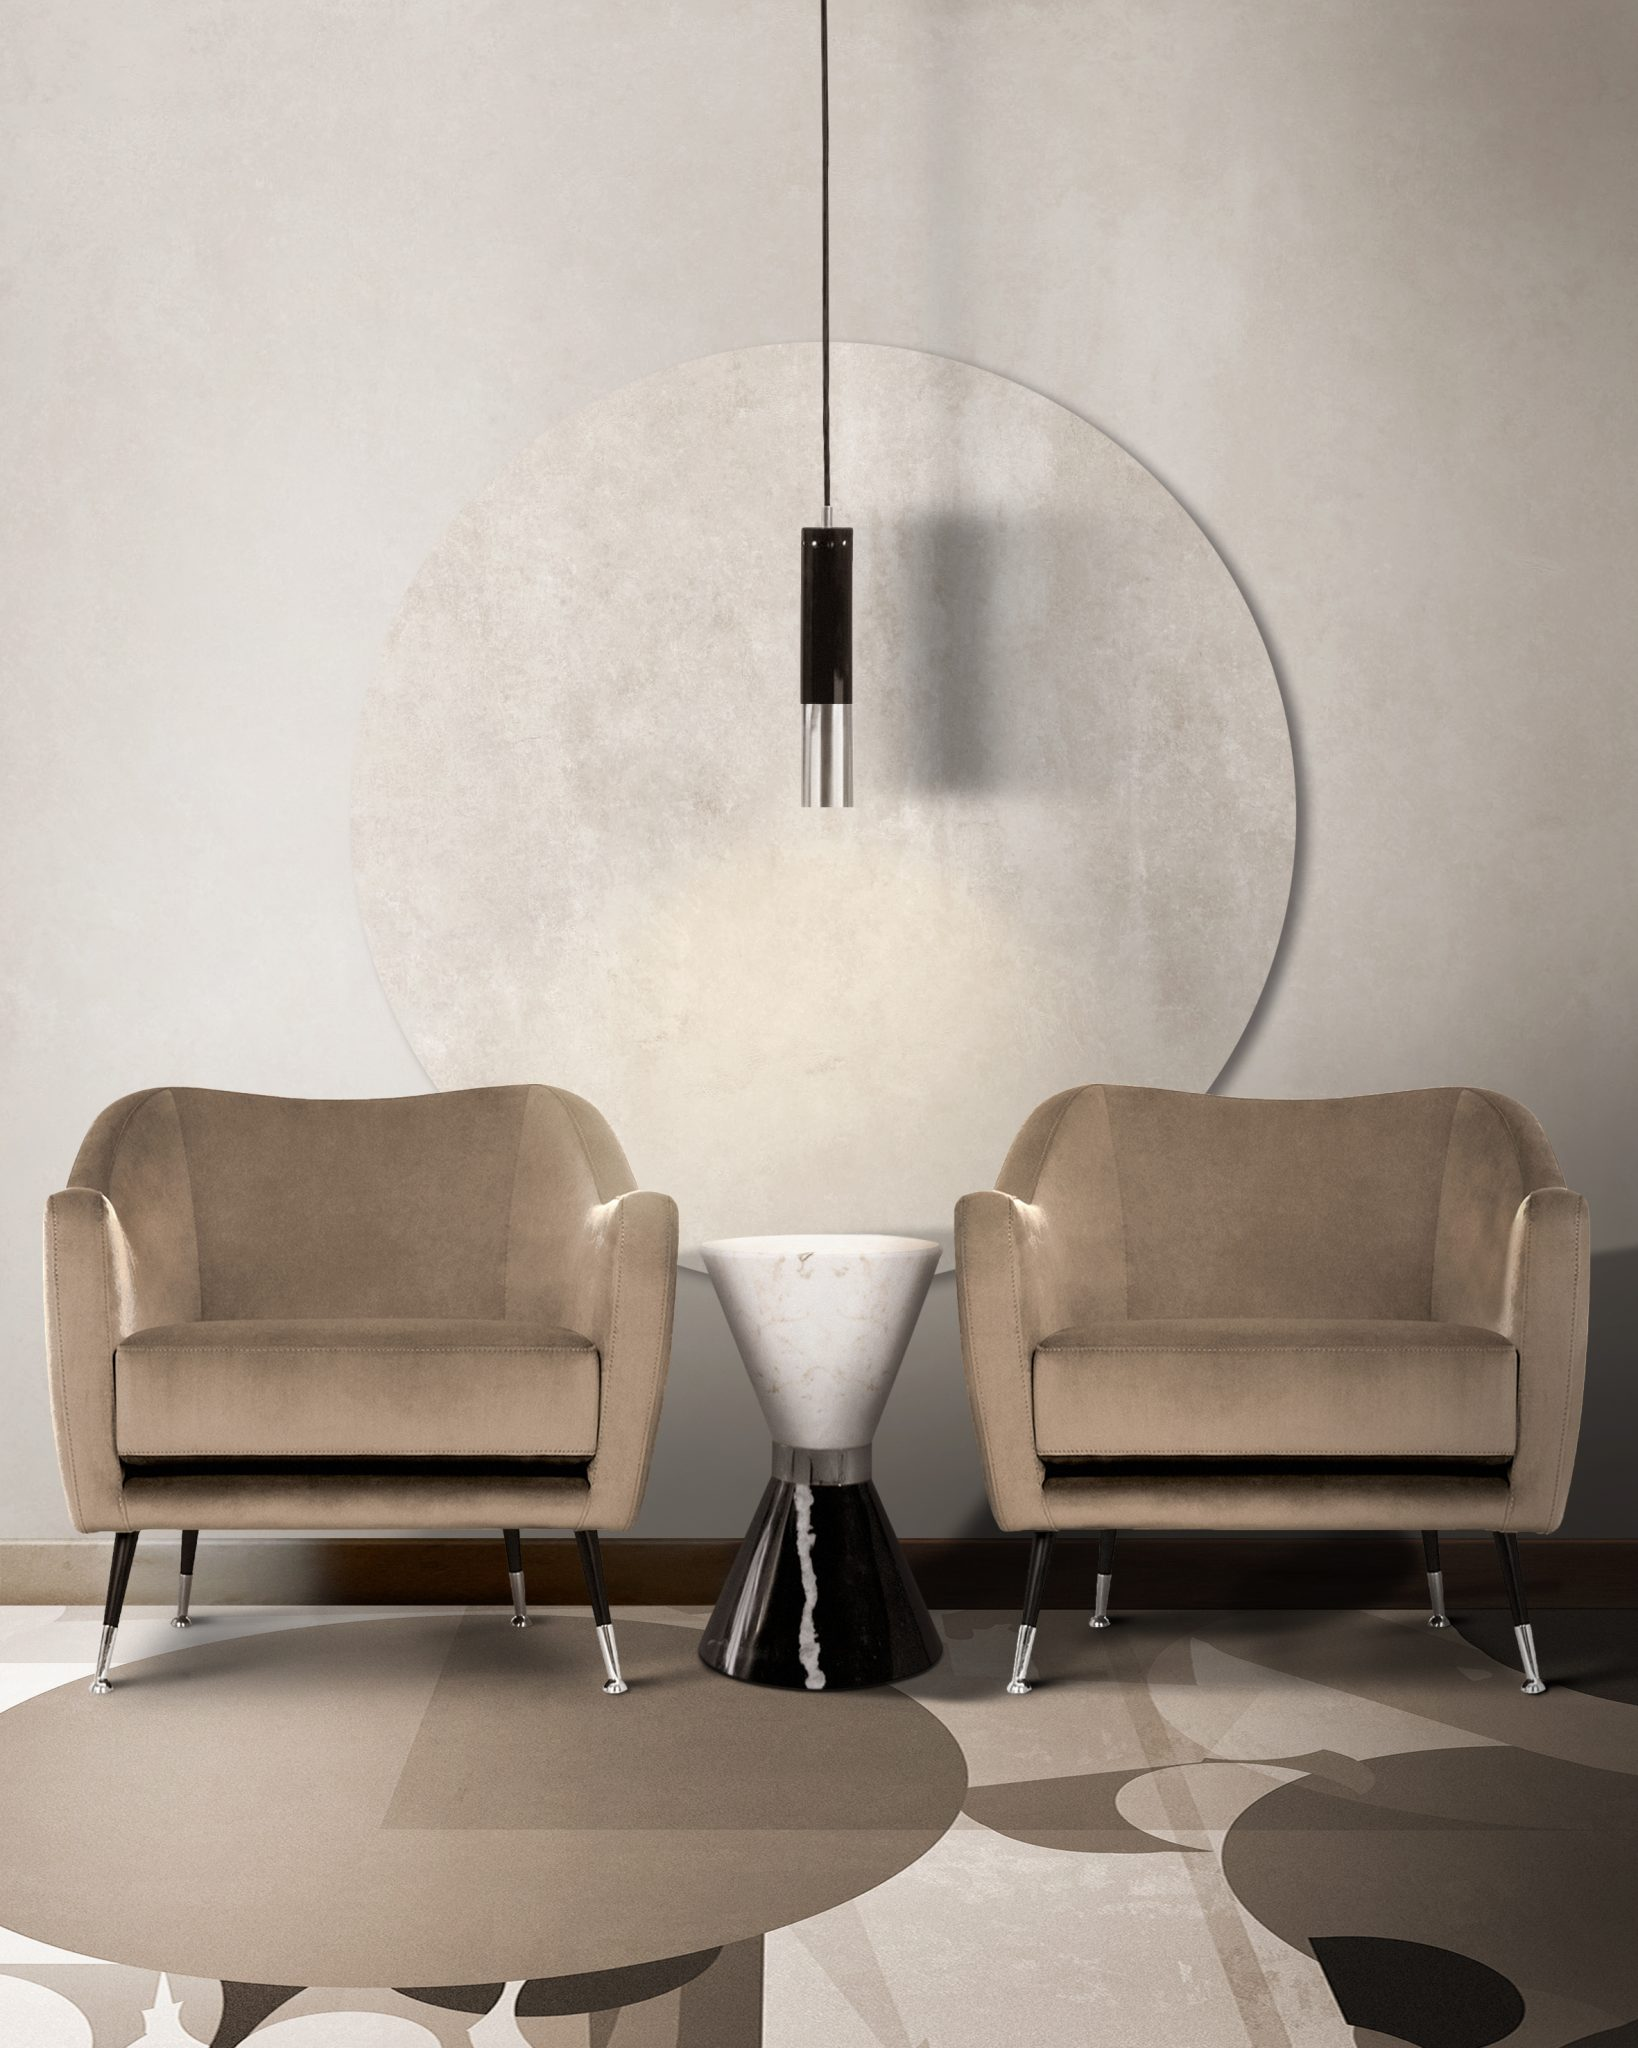 ADD A MODERN AND INDUSTRIAL FEEL TO YOUR SPACE